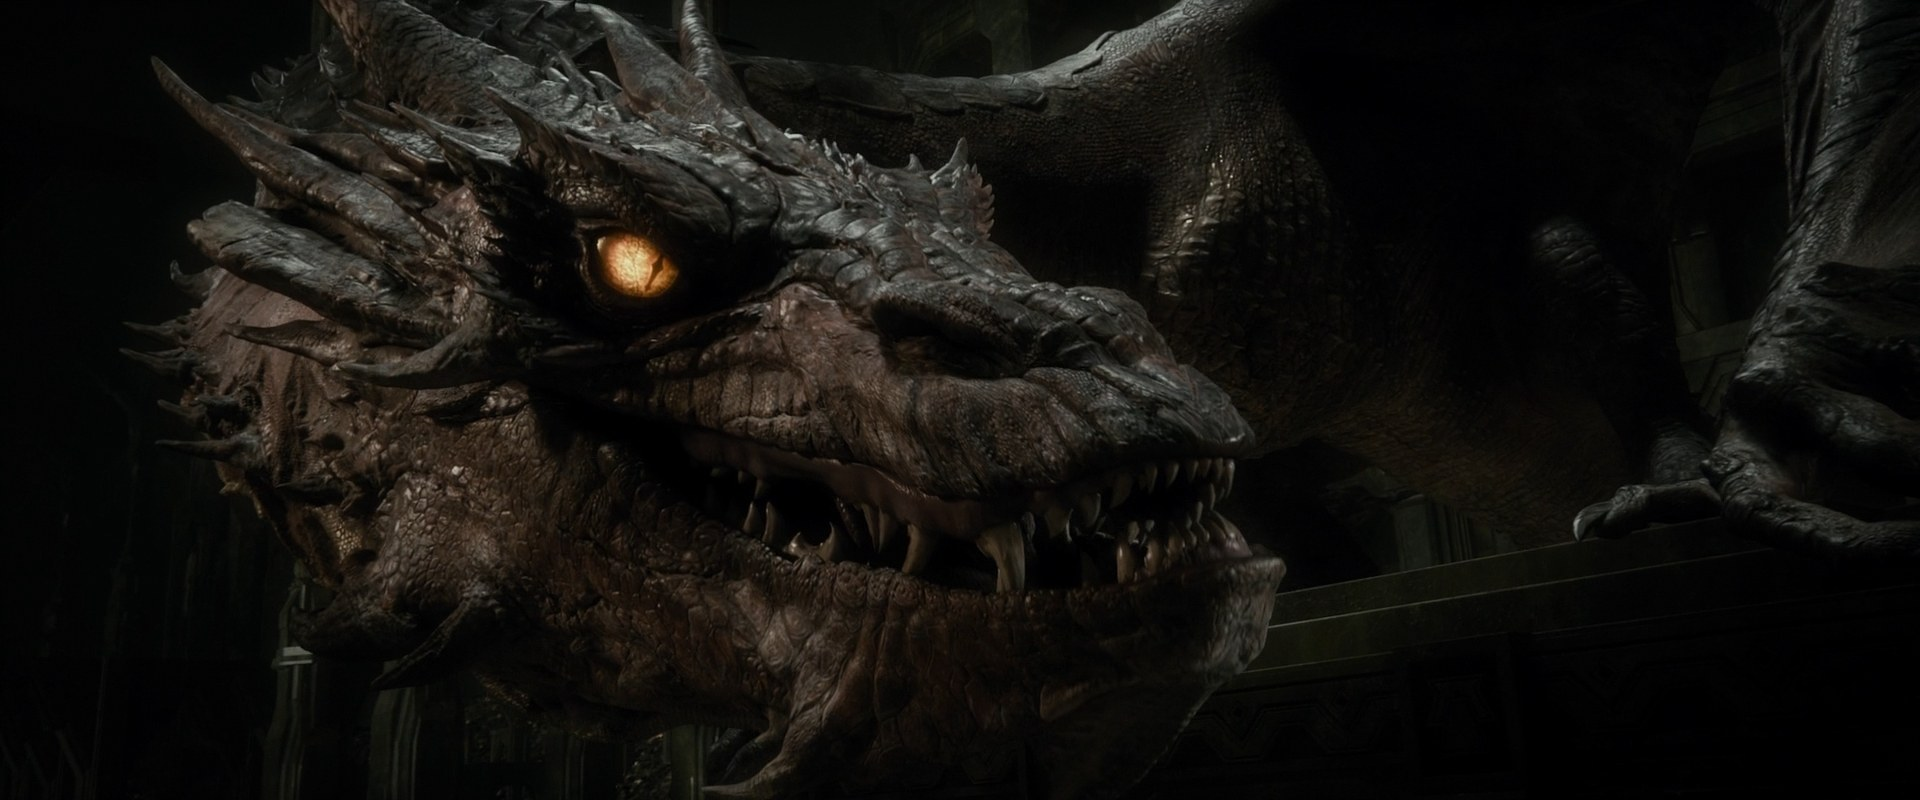 image the hobbit smaug 04 by jd1680ad7c3u4hjpg the